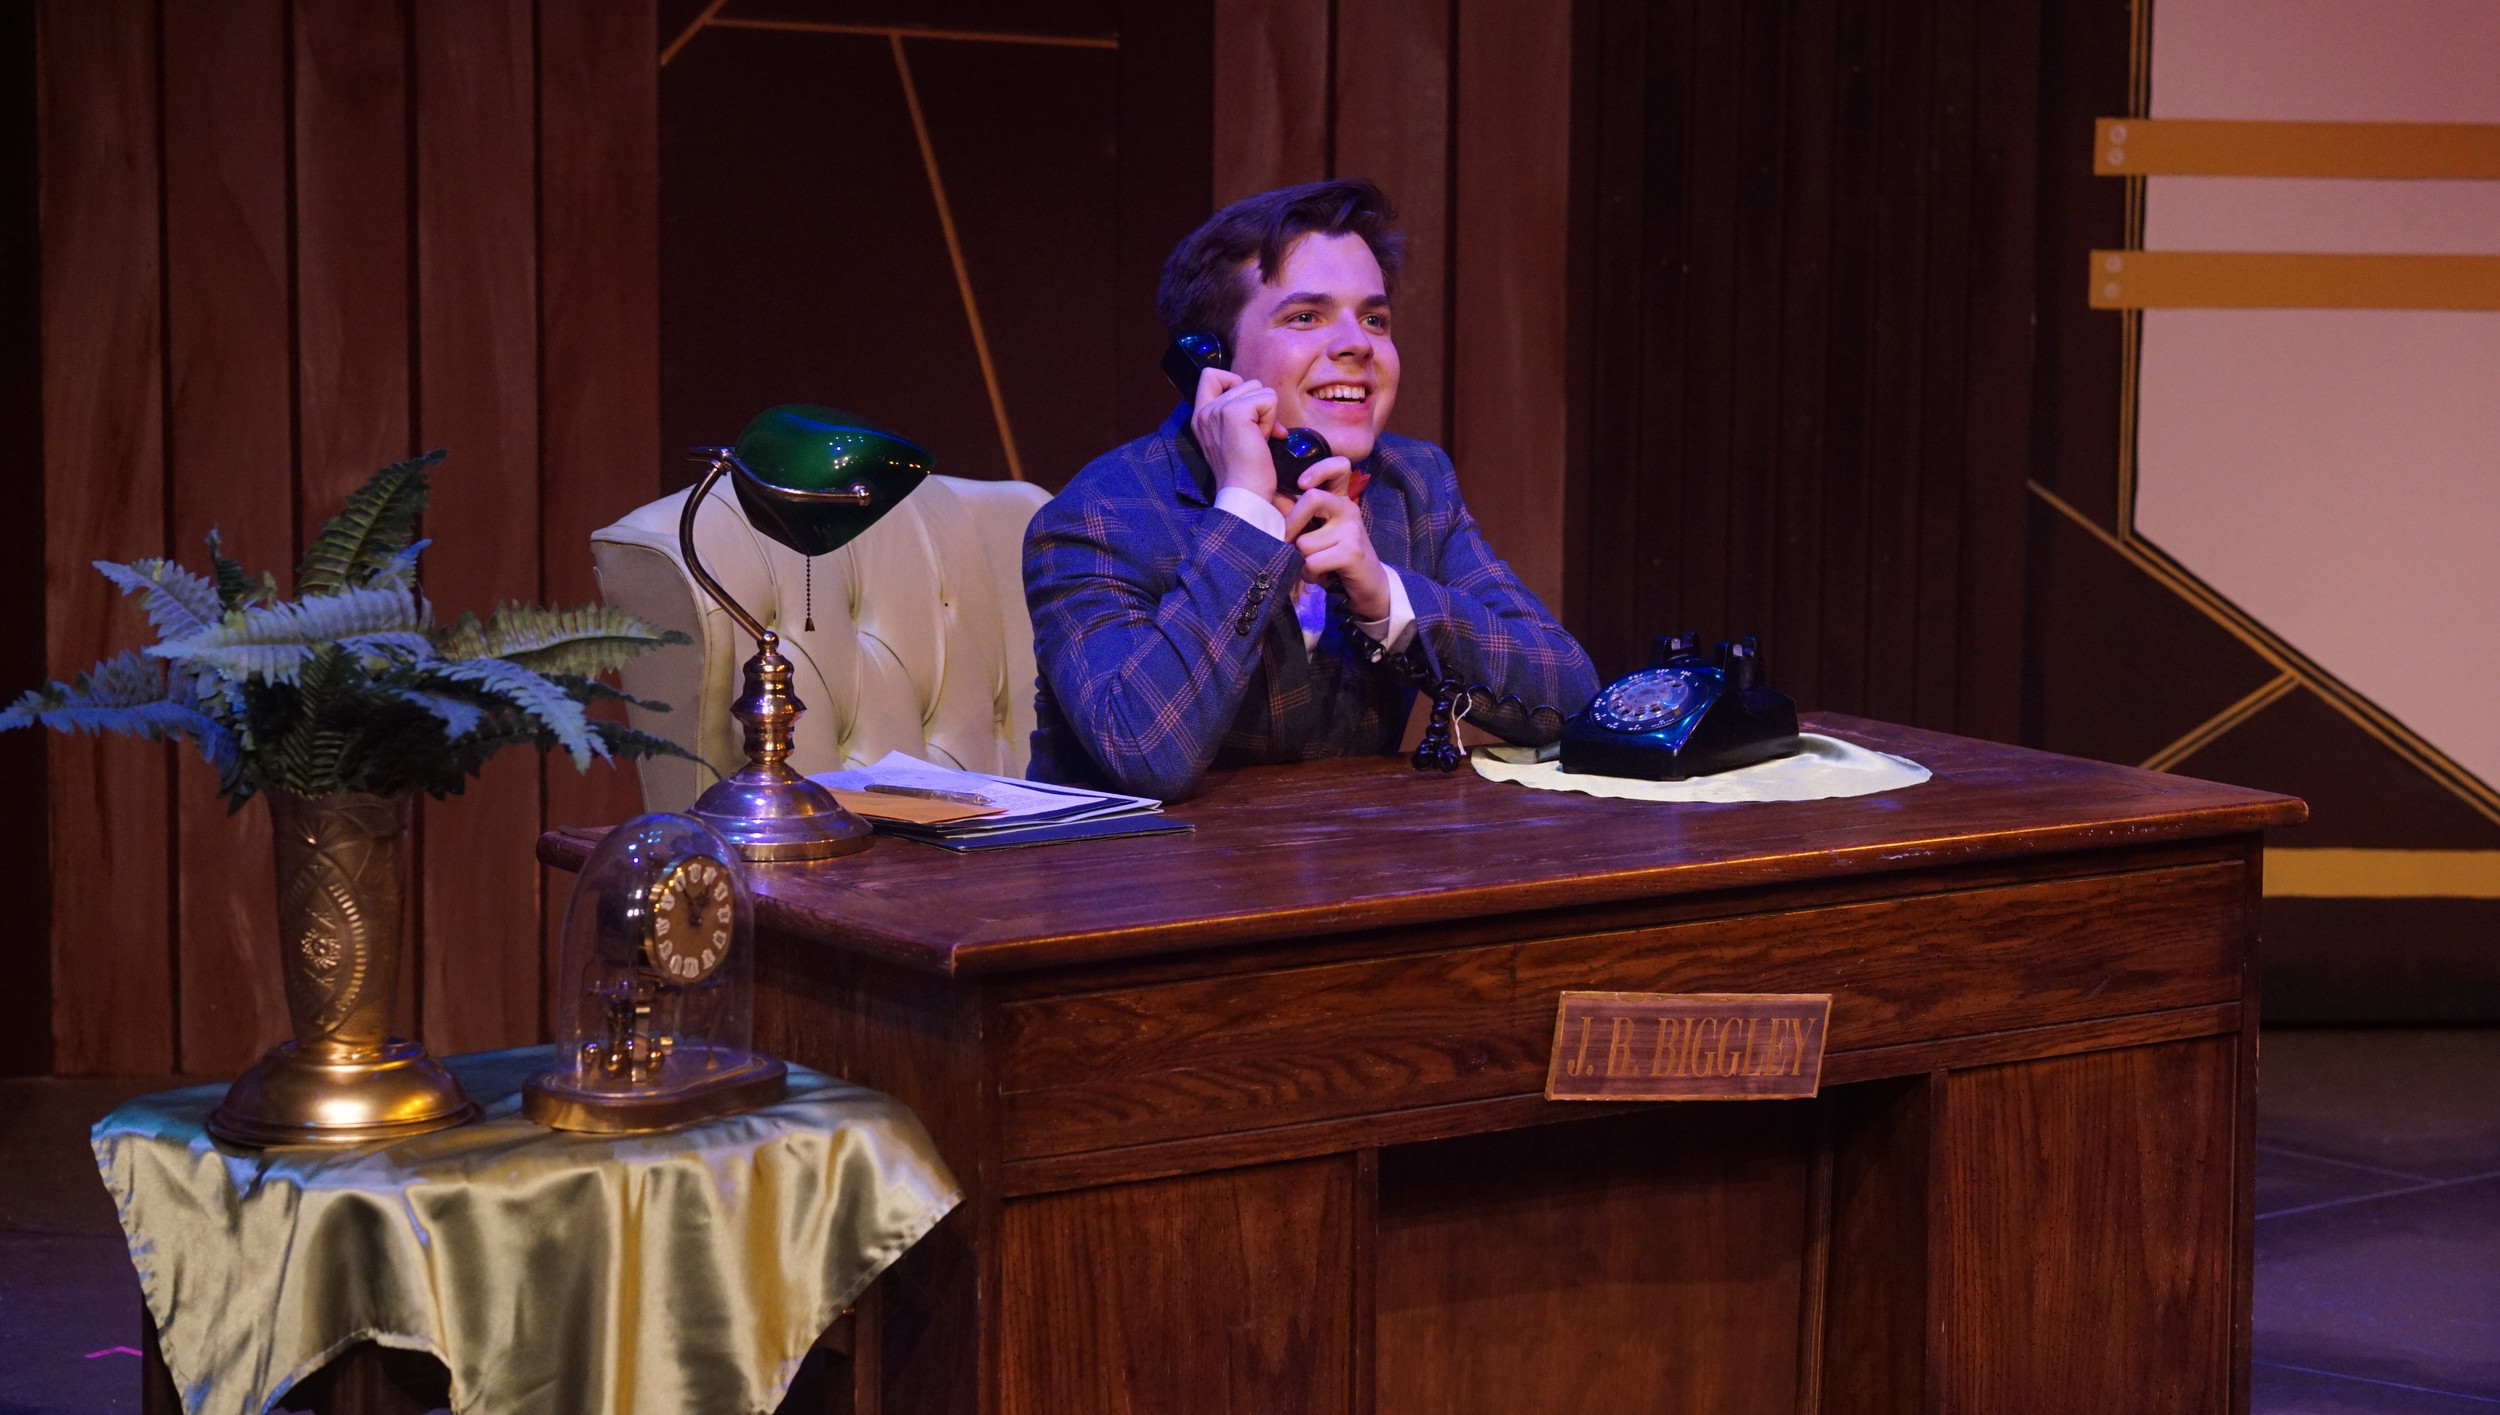 BWW Review: Step into the Office of Outrageous Talent in Summer Stock Austin's HOW TO SUCCEED IN BUSINESS WITHOUT REALLY TRYING